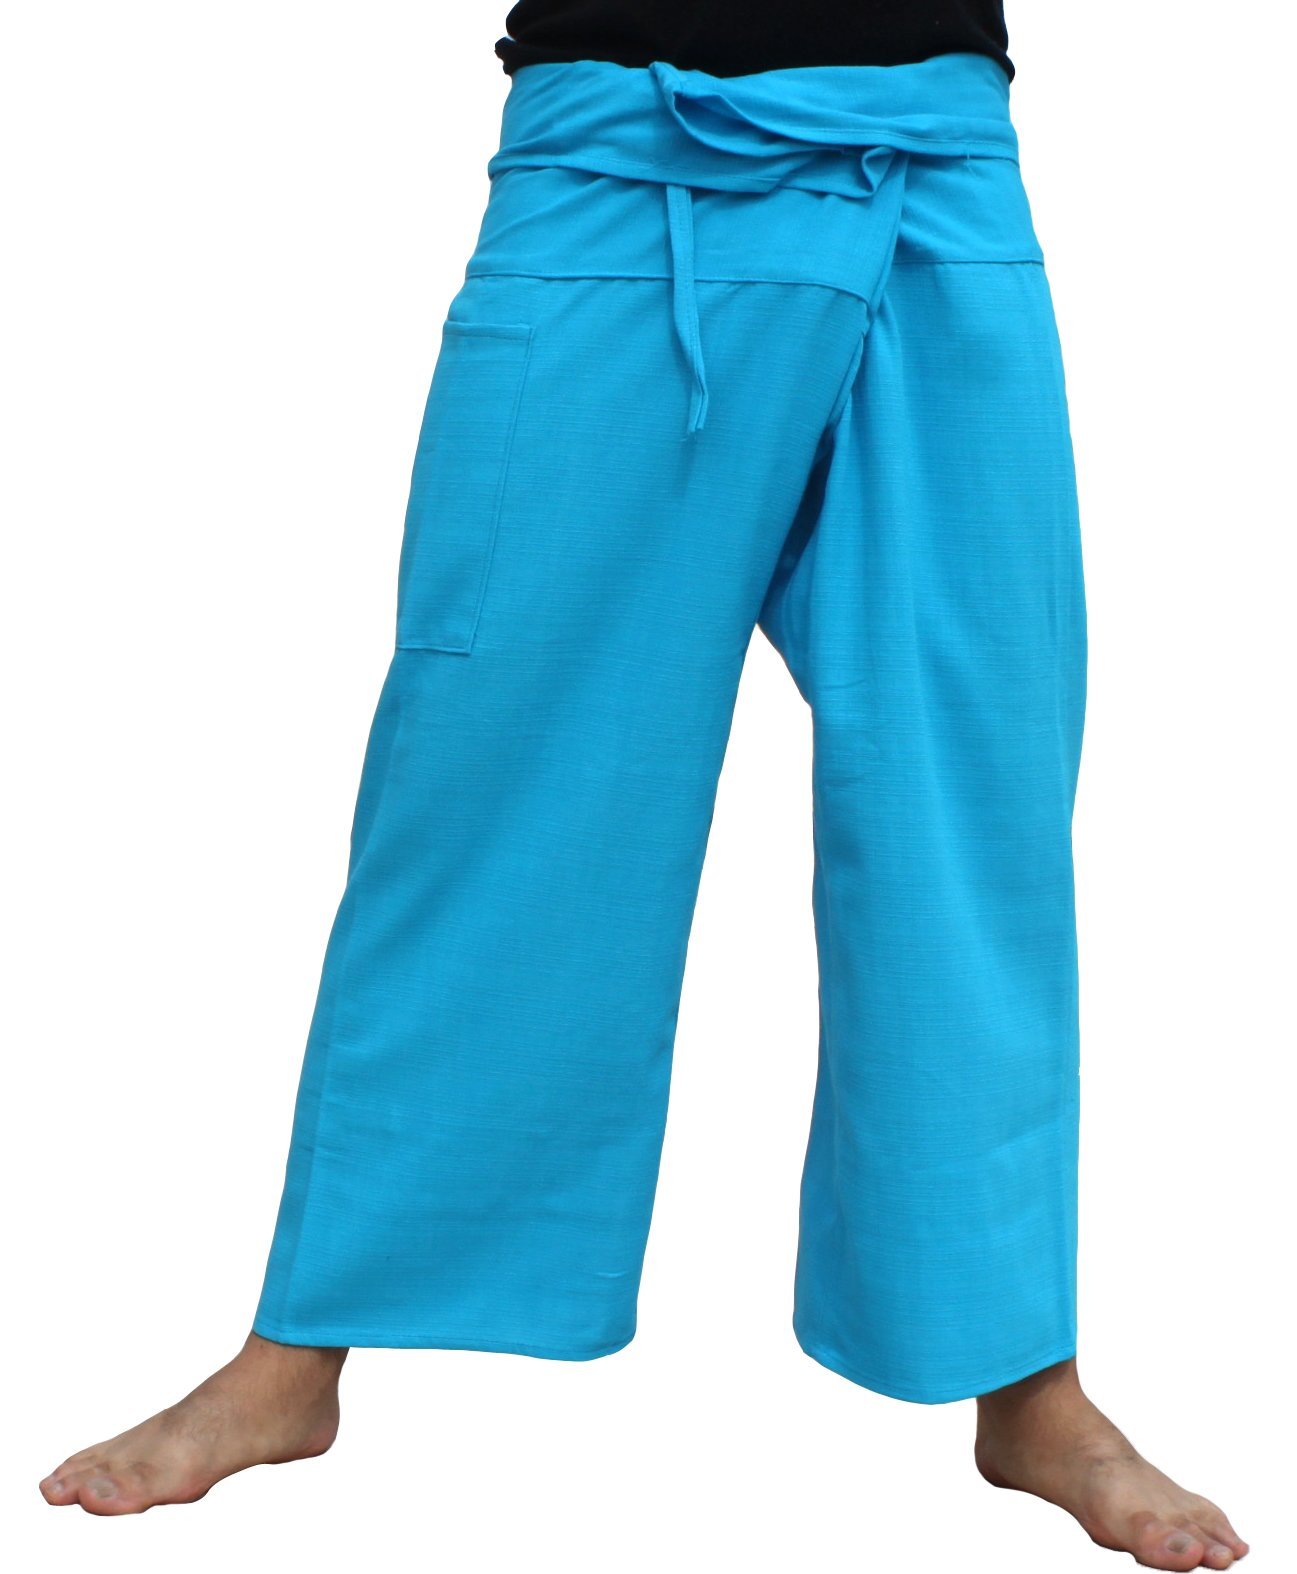 Raan Pah Muang Brand Plain Thick Line Cotton Thai Fisherman Wrap Tall Length Pants, XX-Large, Sky Blue by Raan Pah Muang